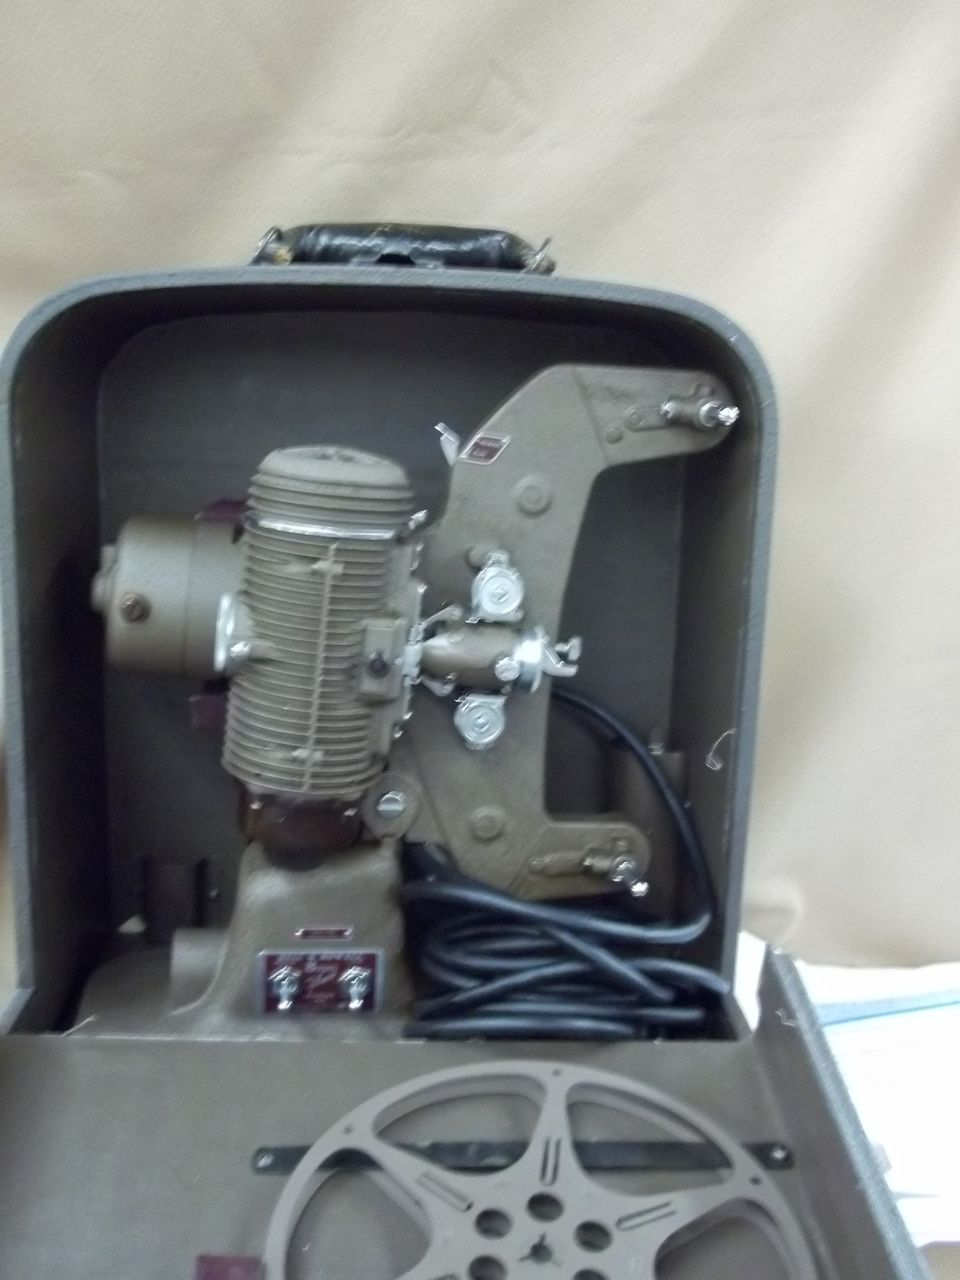 Vintage Bell & Howell Projectors http://www.rubylane.com/item/710953-RL-078-303/Vintage-Bell-Howell-Movie-Projector